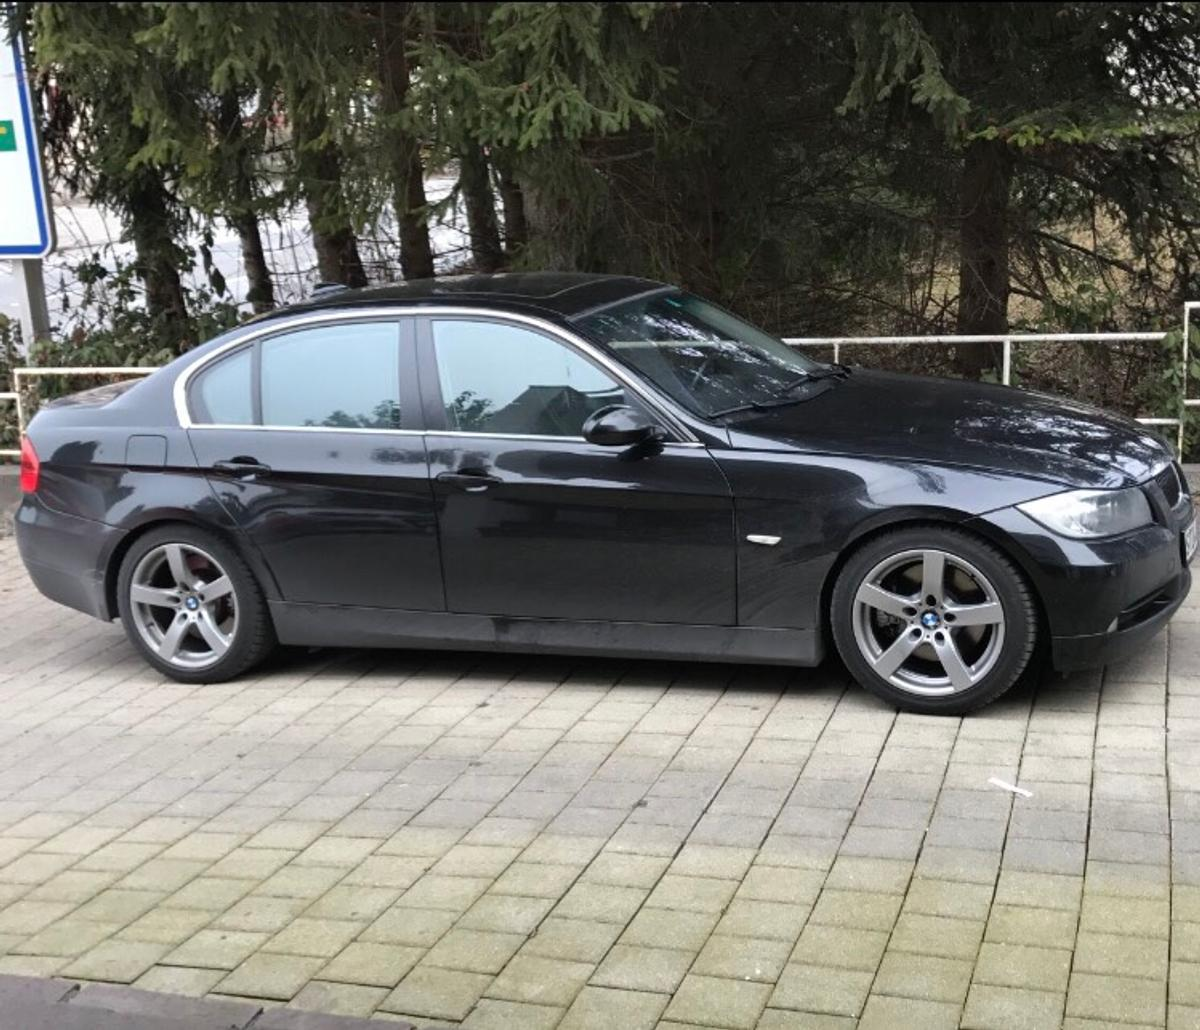 BMW 330i In 6845 Hohenems For €8,500.00 For Sale